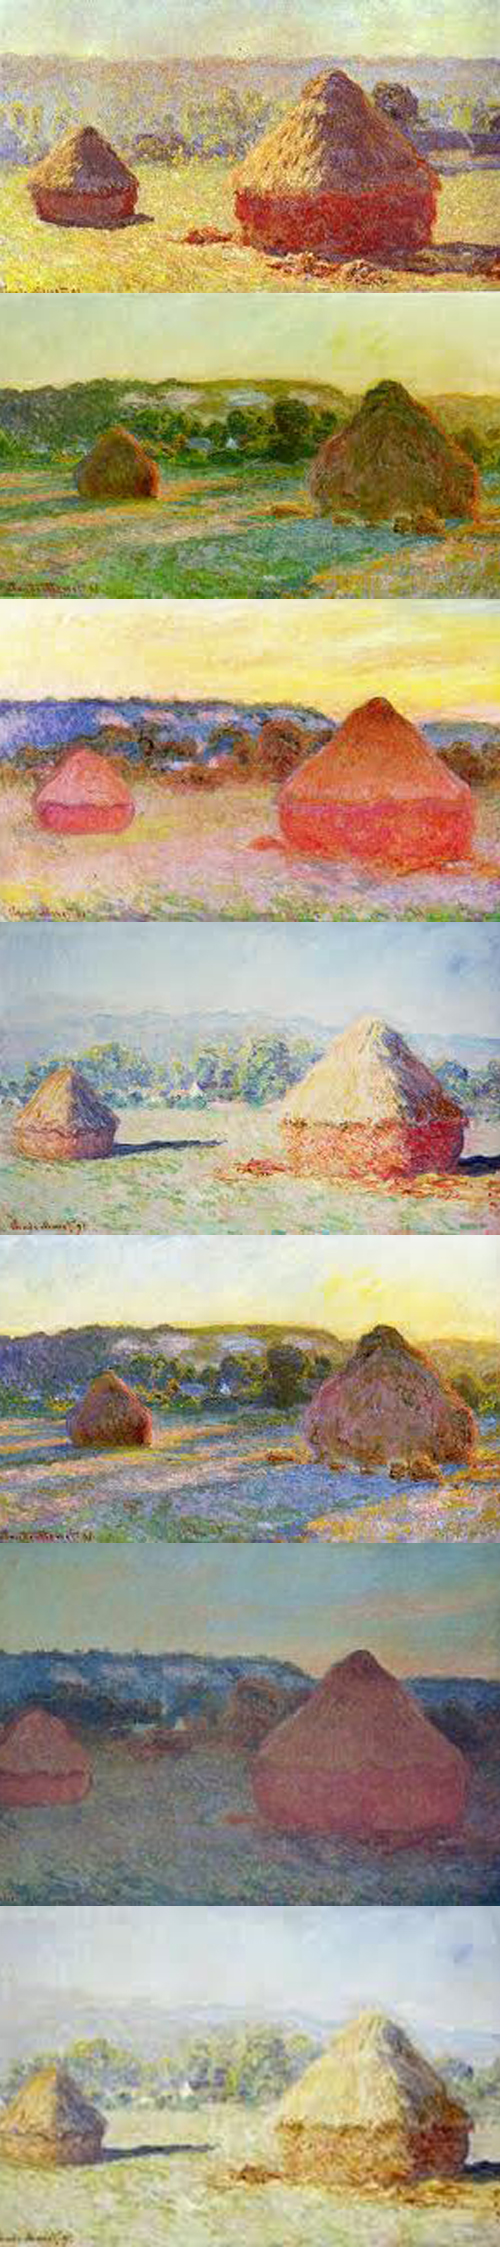 MoneyHaystacks